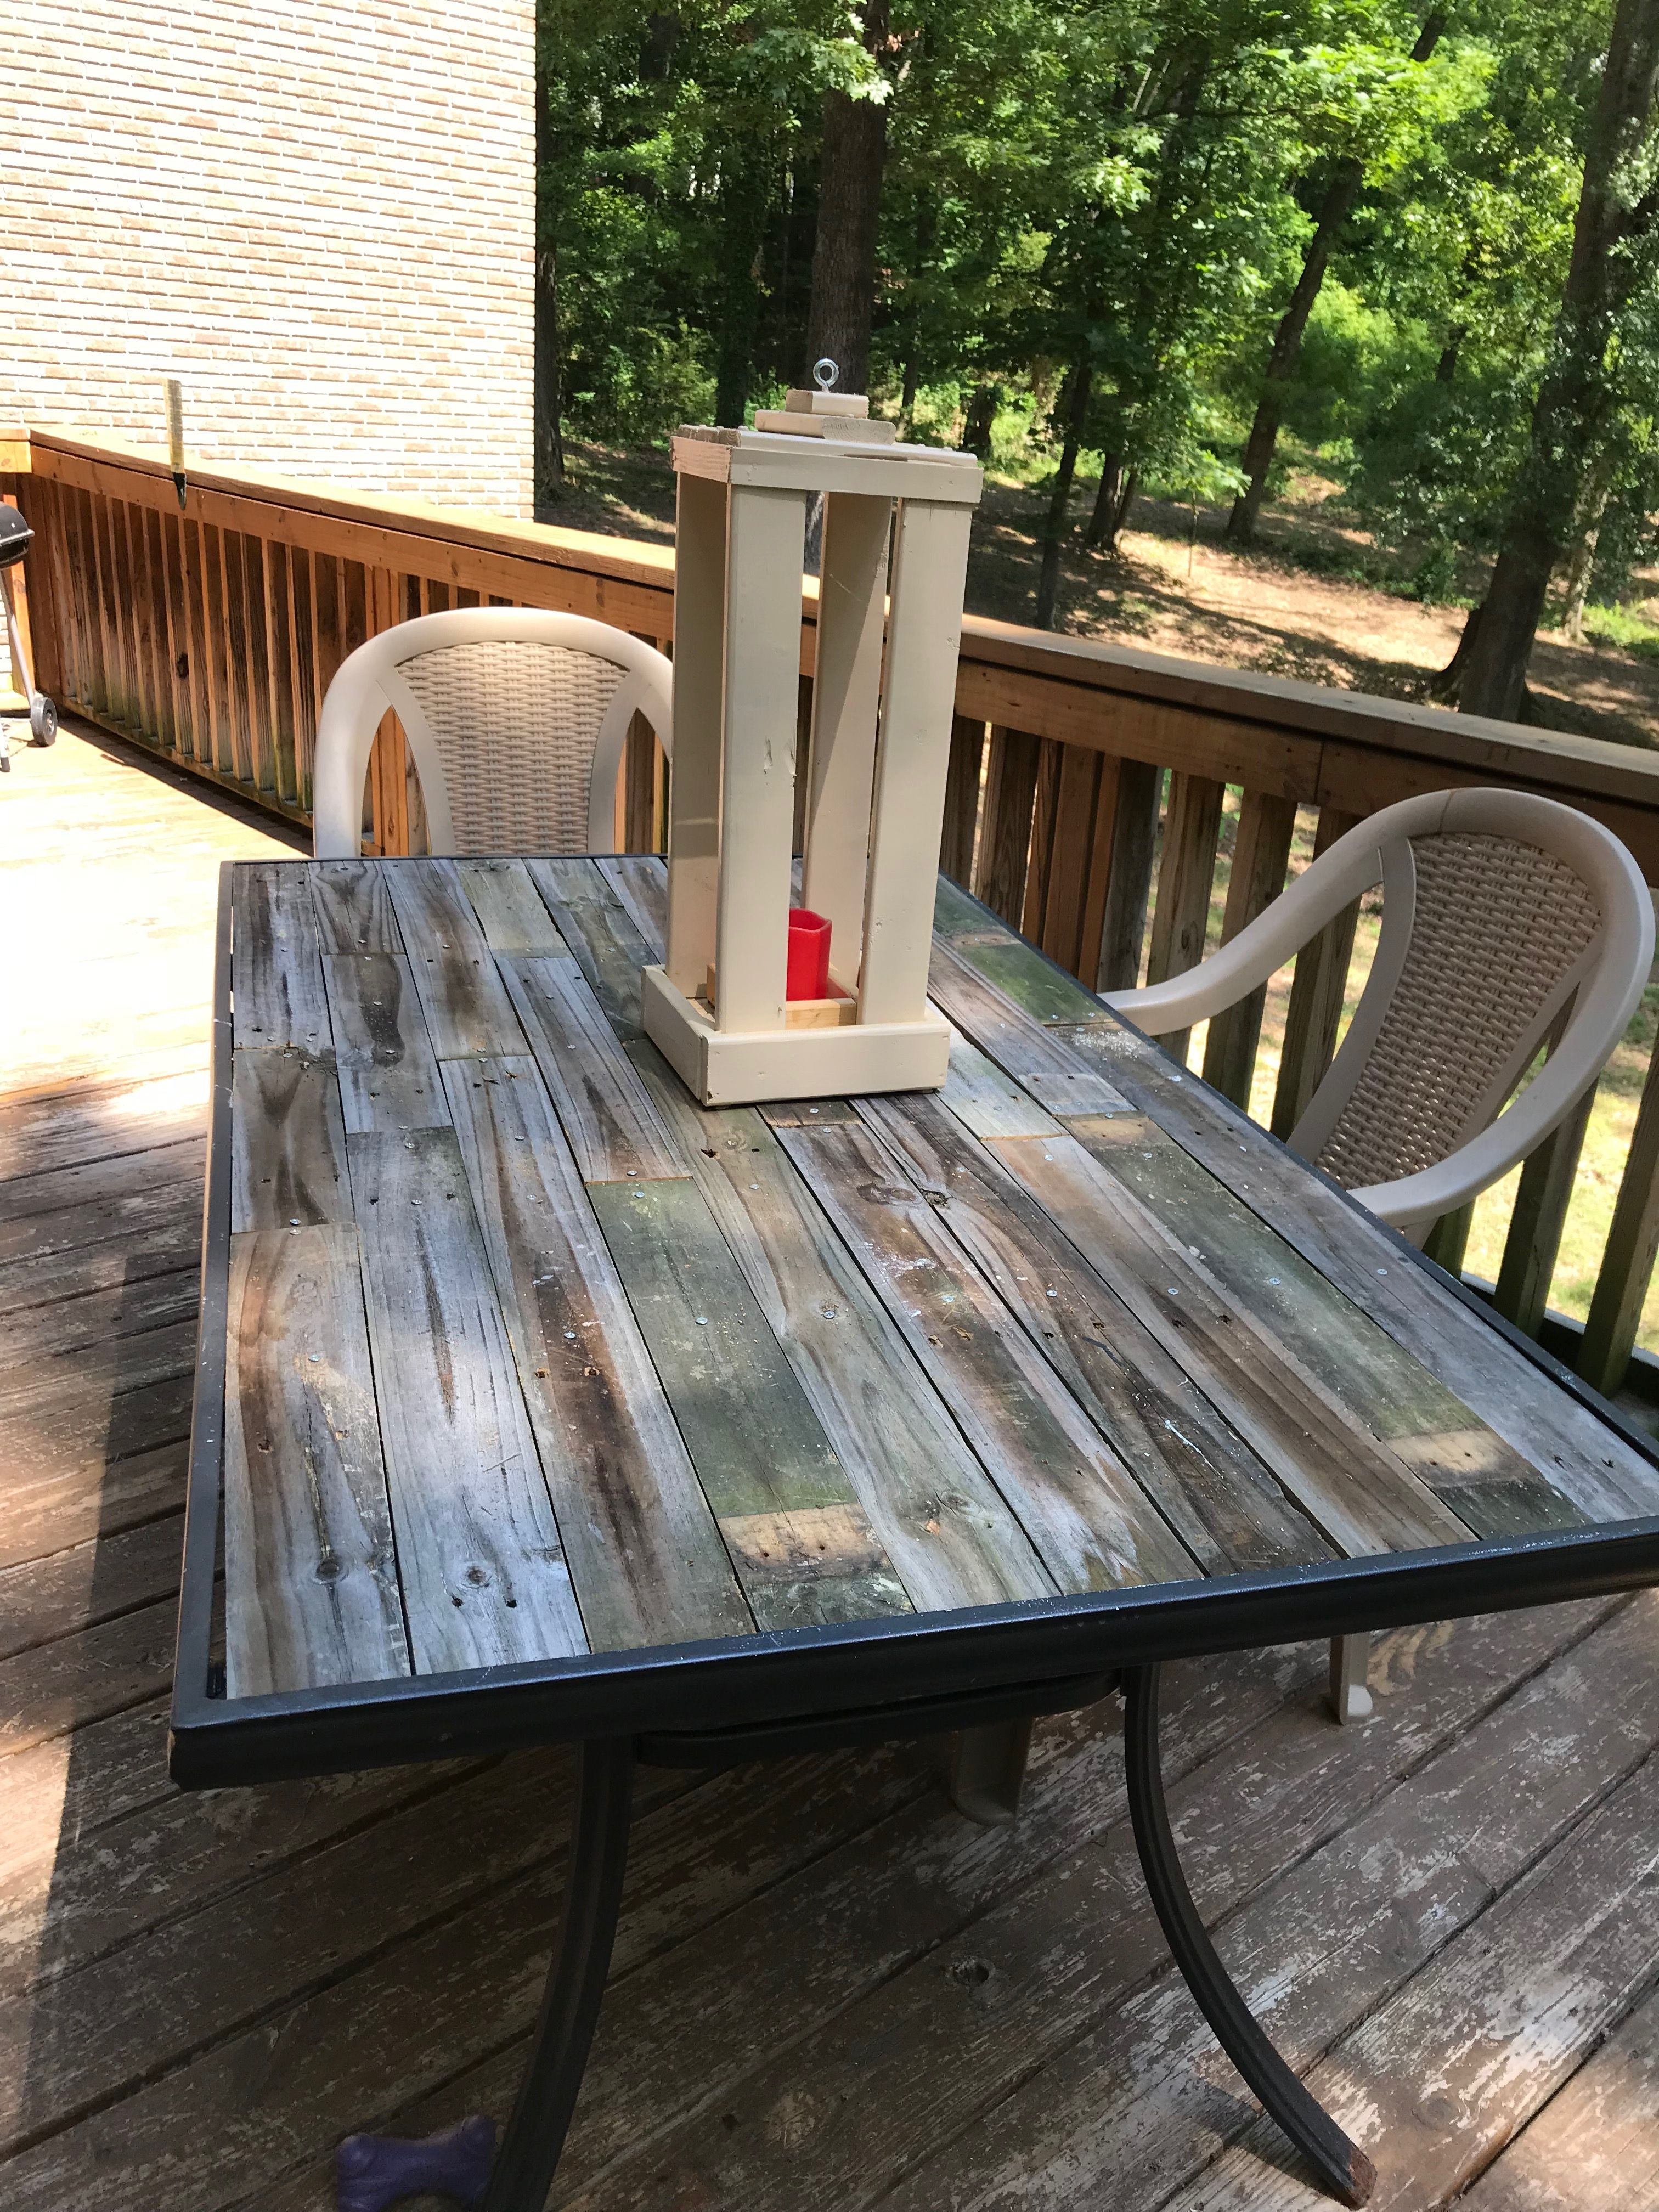 Old Patio Table Had The Glass Top Broken Out Replaced It With Old Picket Fence Patio Table Top Patio Table Redo Outdoor Table Tops